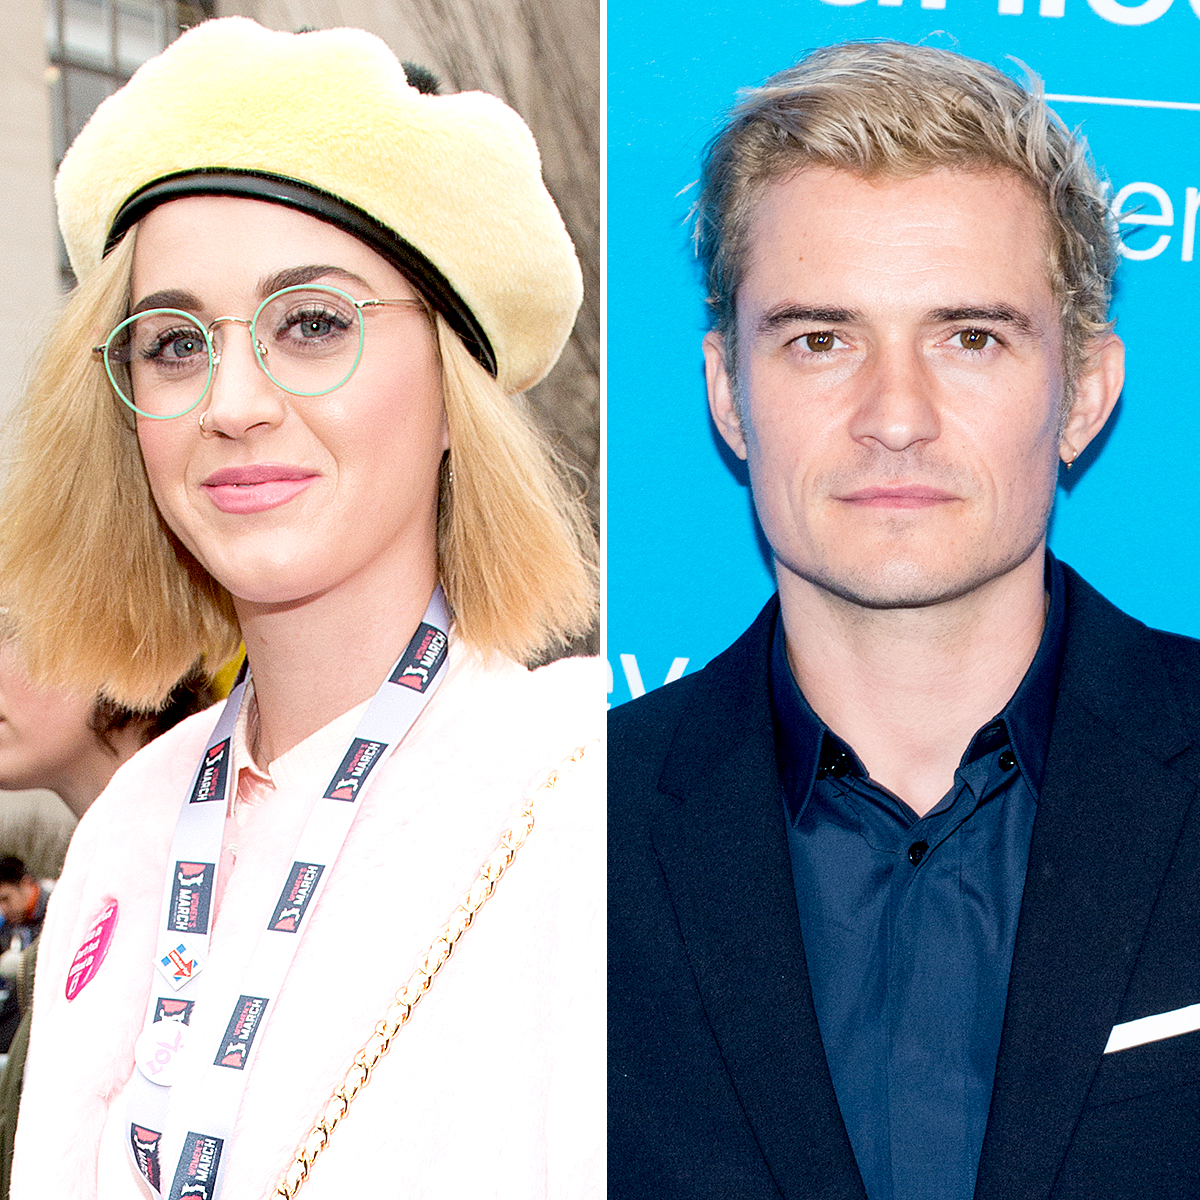 katy-perry-orlando-bloom-blonde - Perry and Bloom debuted their matching, newly dyed blond hair.